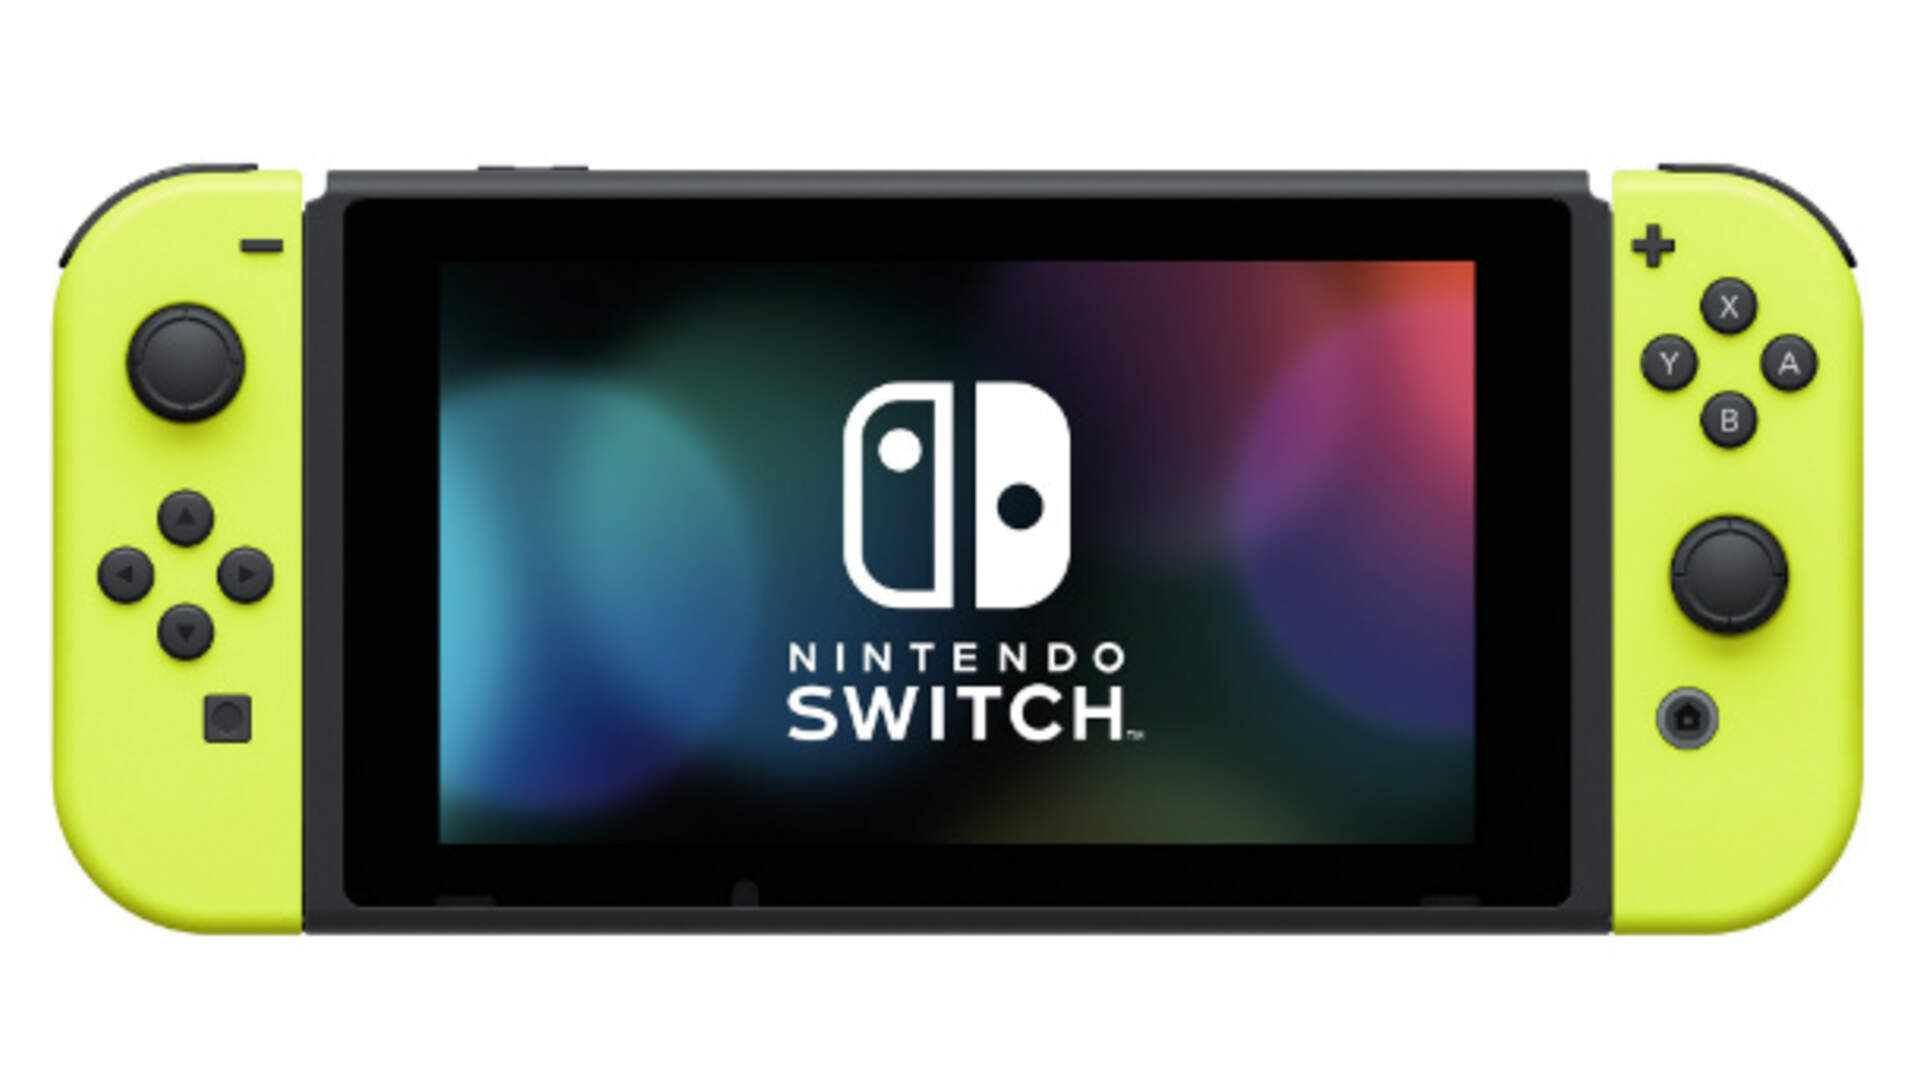 Nintendo Switch Has Mario Kart 8, Minecraft, Rayman, and Payday 2 Coming This Year